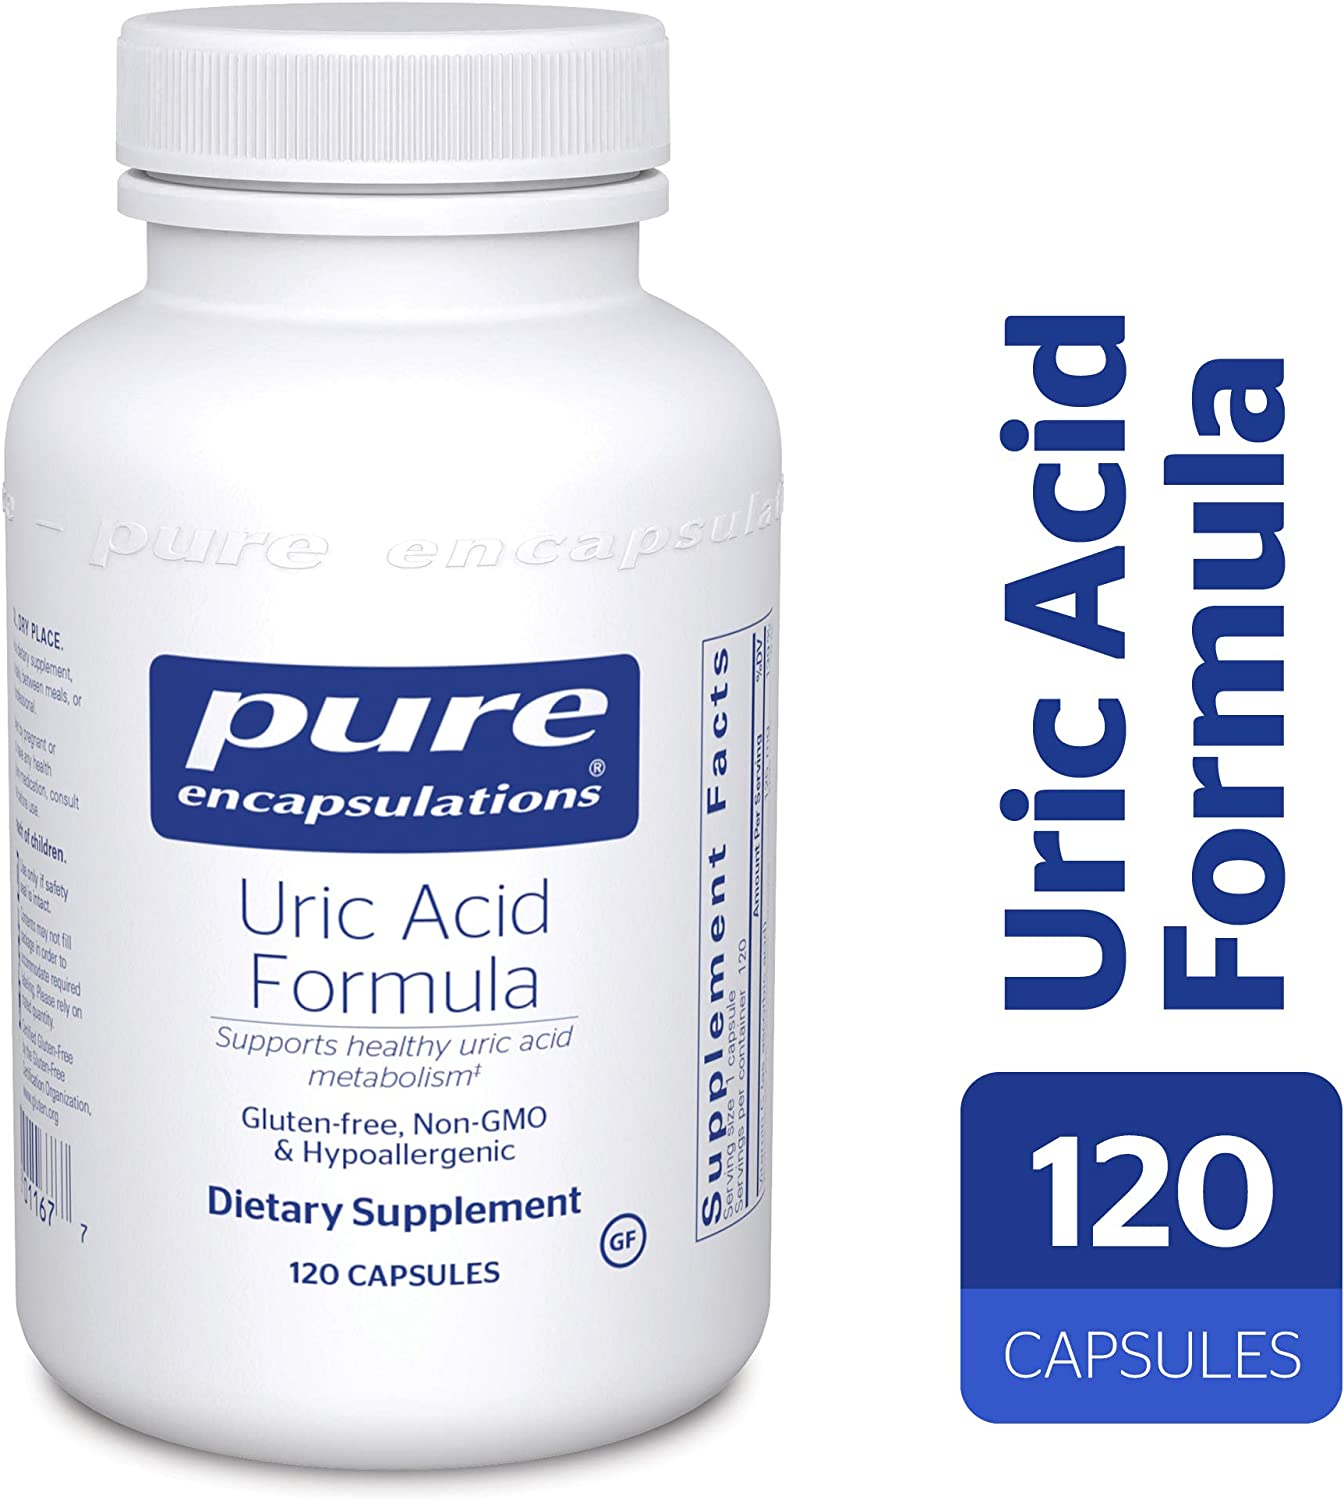 Pure Encapsulations – Uric Acid Formula – Hypoallergenic Supplement with Vitamins and Herbal Extracts to Support Healthy Uric Acid Metabolism* – 120 Capsules